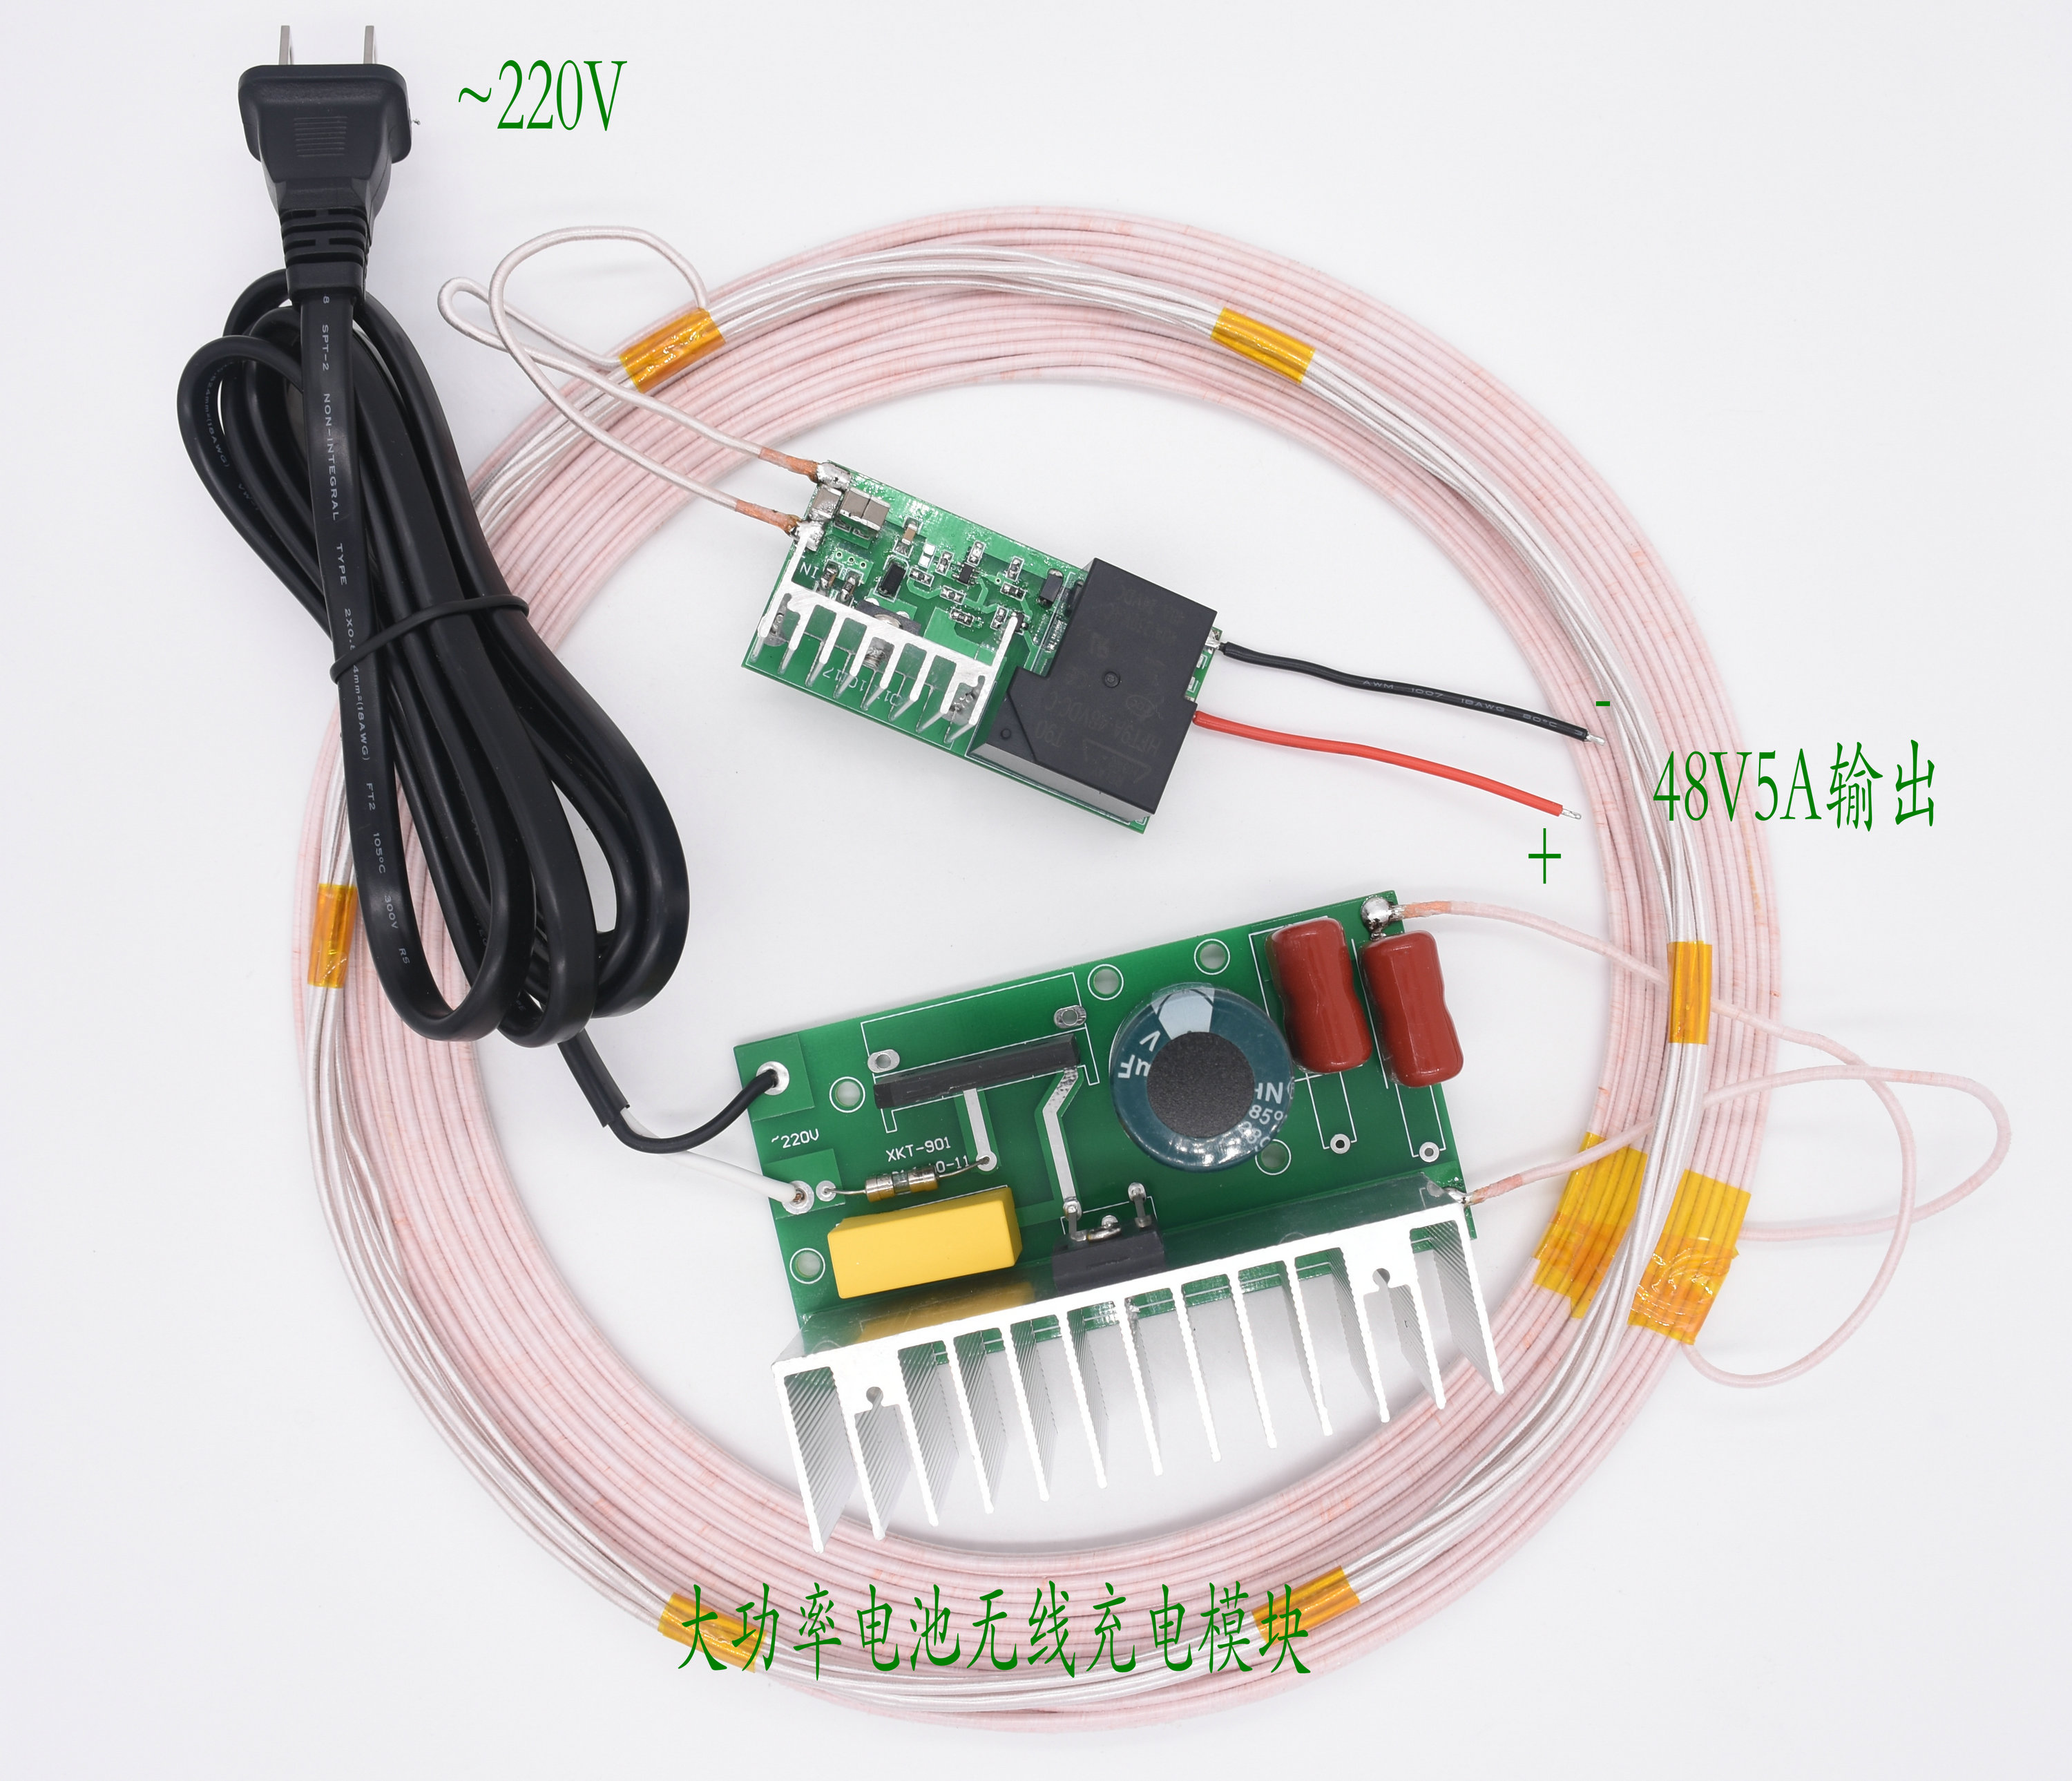 48V5A High Power Wireless Charging Module Wireless Transmission Module Wireless Power Supply Module XKT901-06 5v1 5a high current wireless charging module power supply module ic chip solution